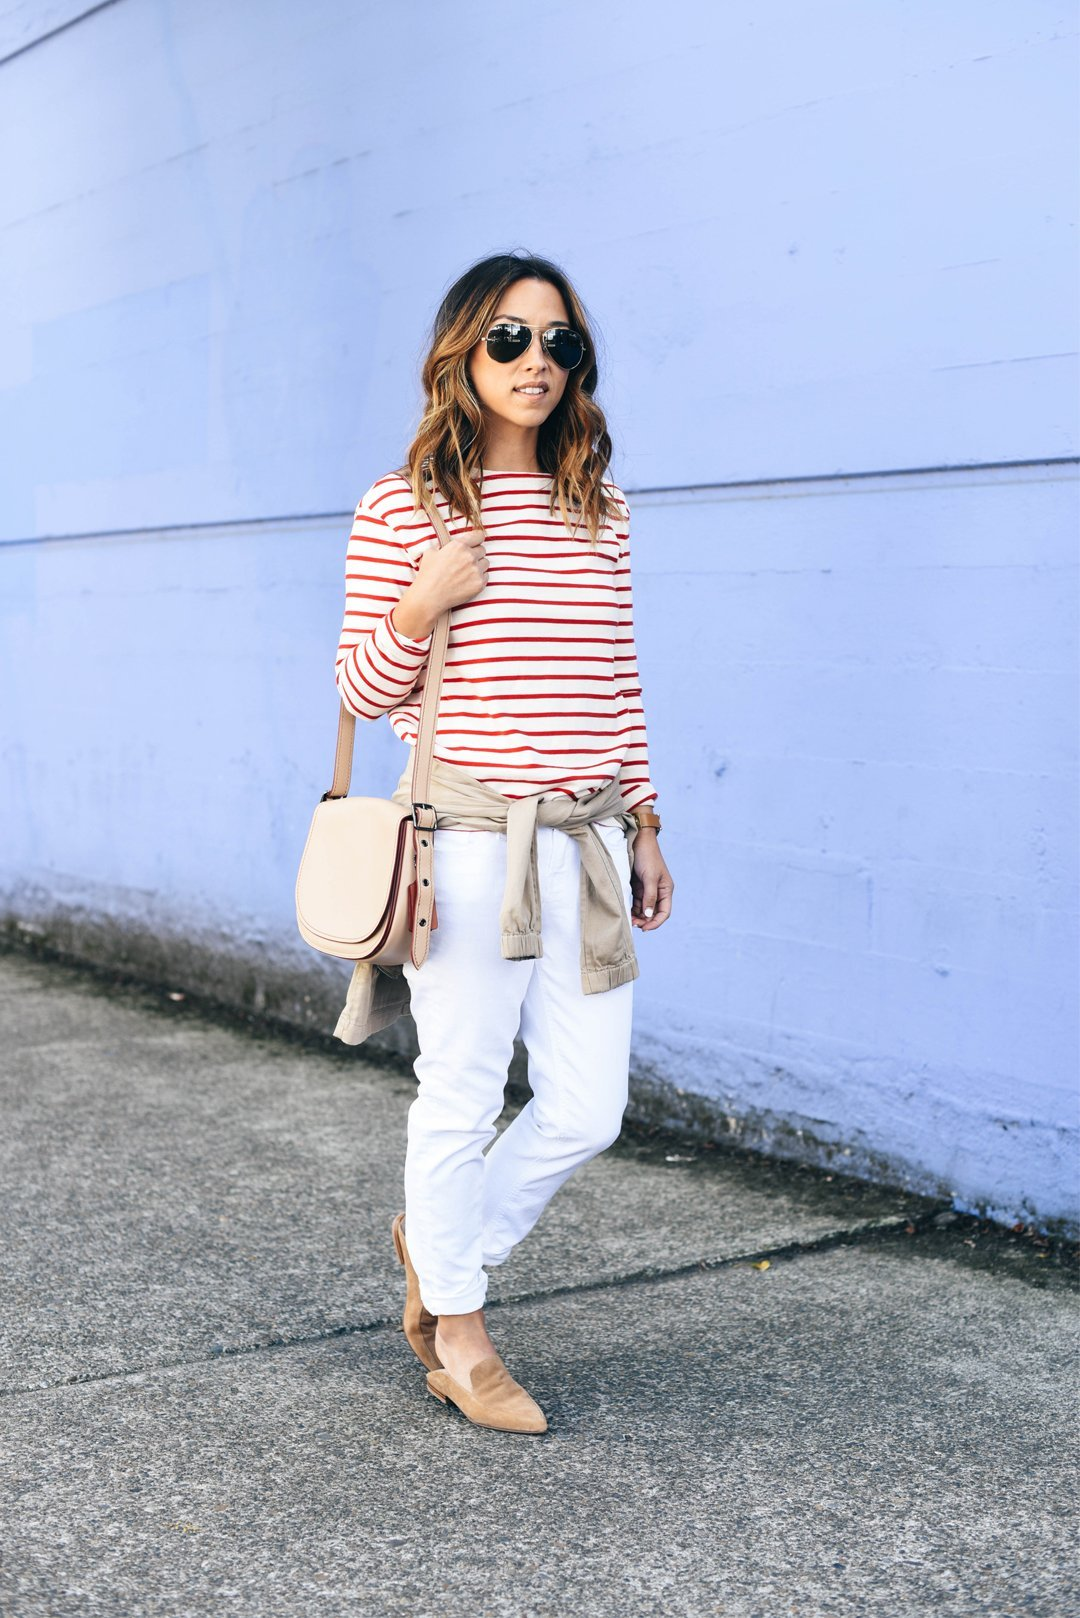 old-navy-red-striped-shirt